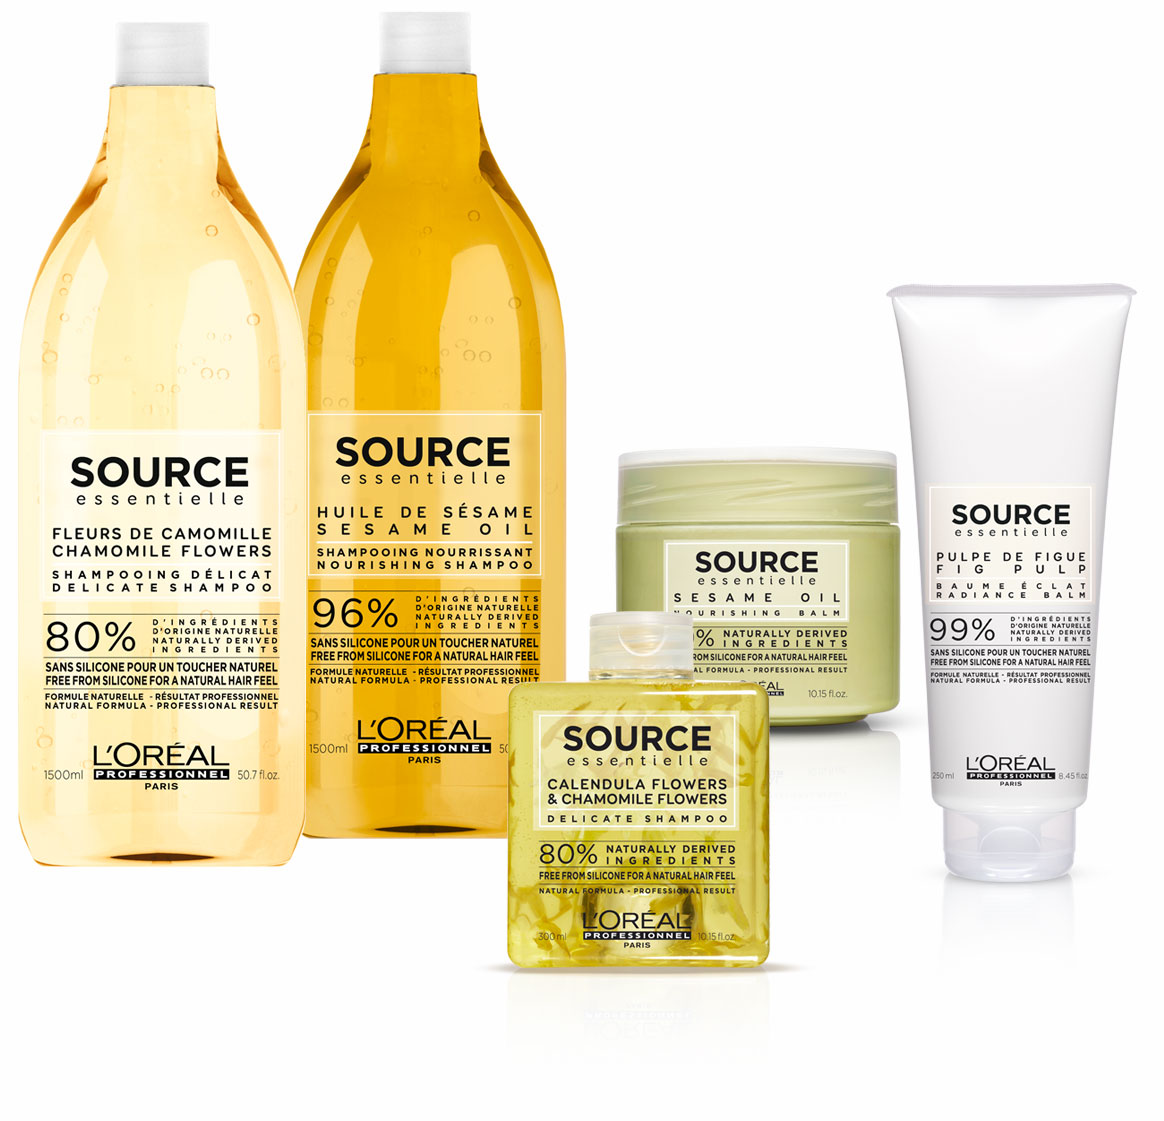 L'Oreal Source Essentielle product group